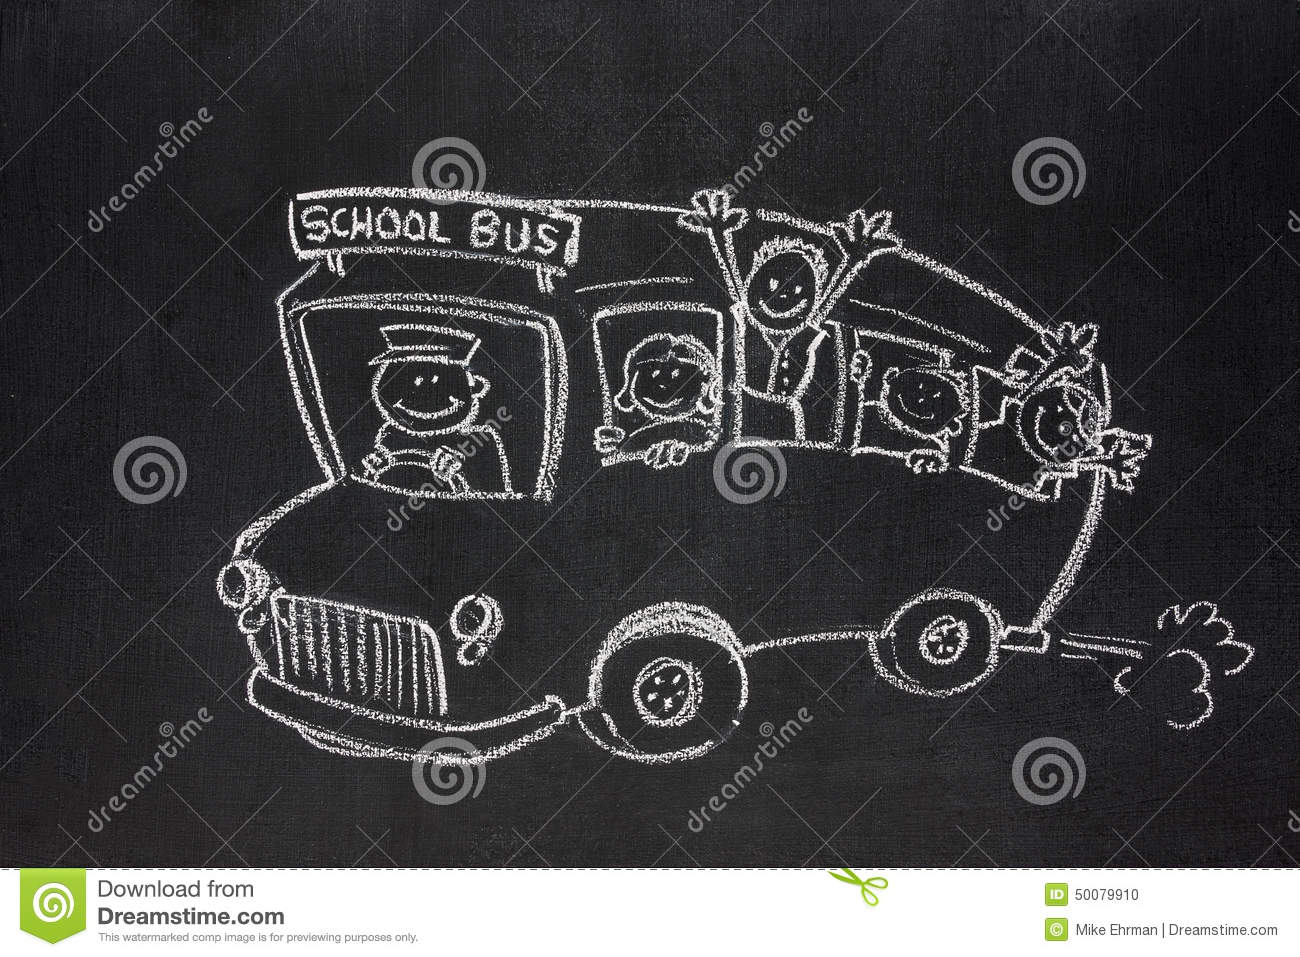 School bus stock photo. Image of graphic, young ...